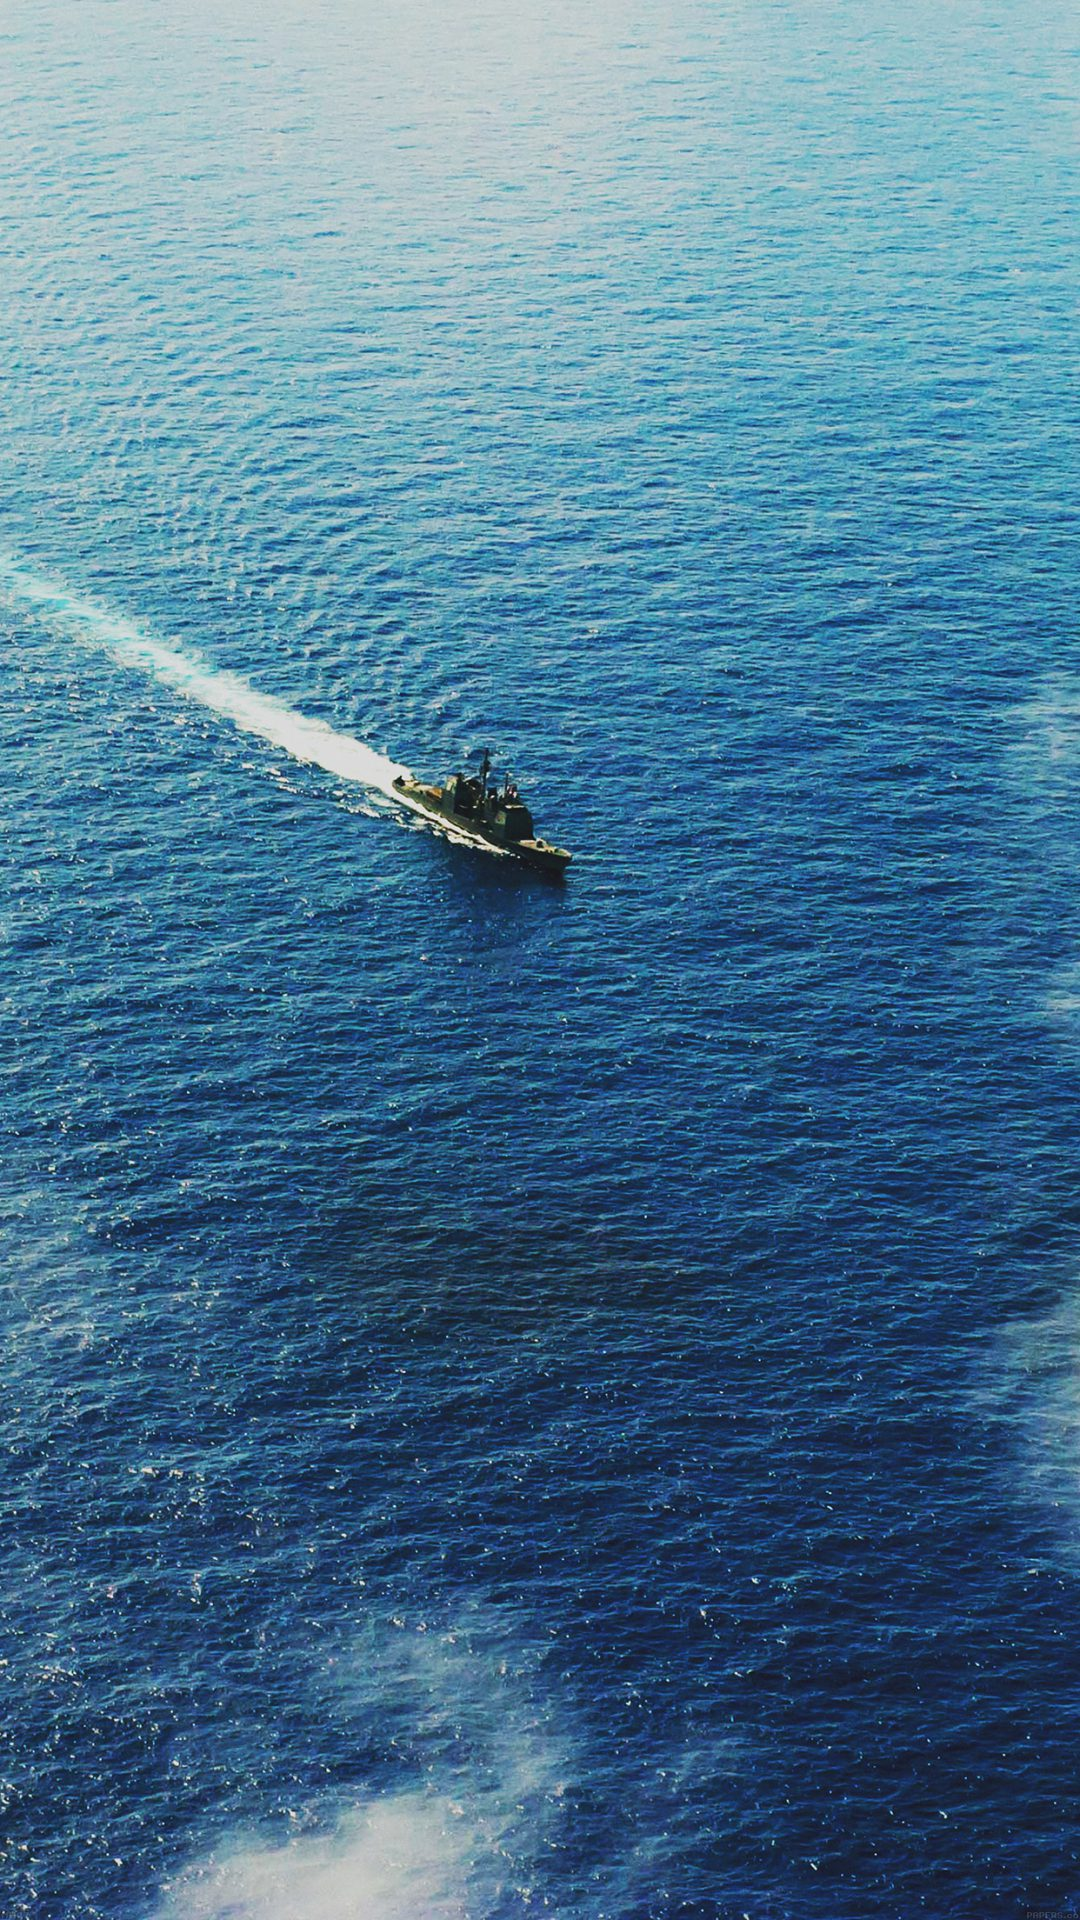 Ocean Ship Sea Sunny Day Pacific Nature Military Army